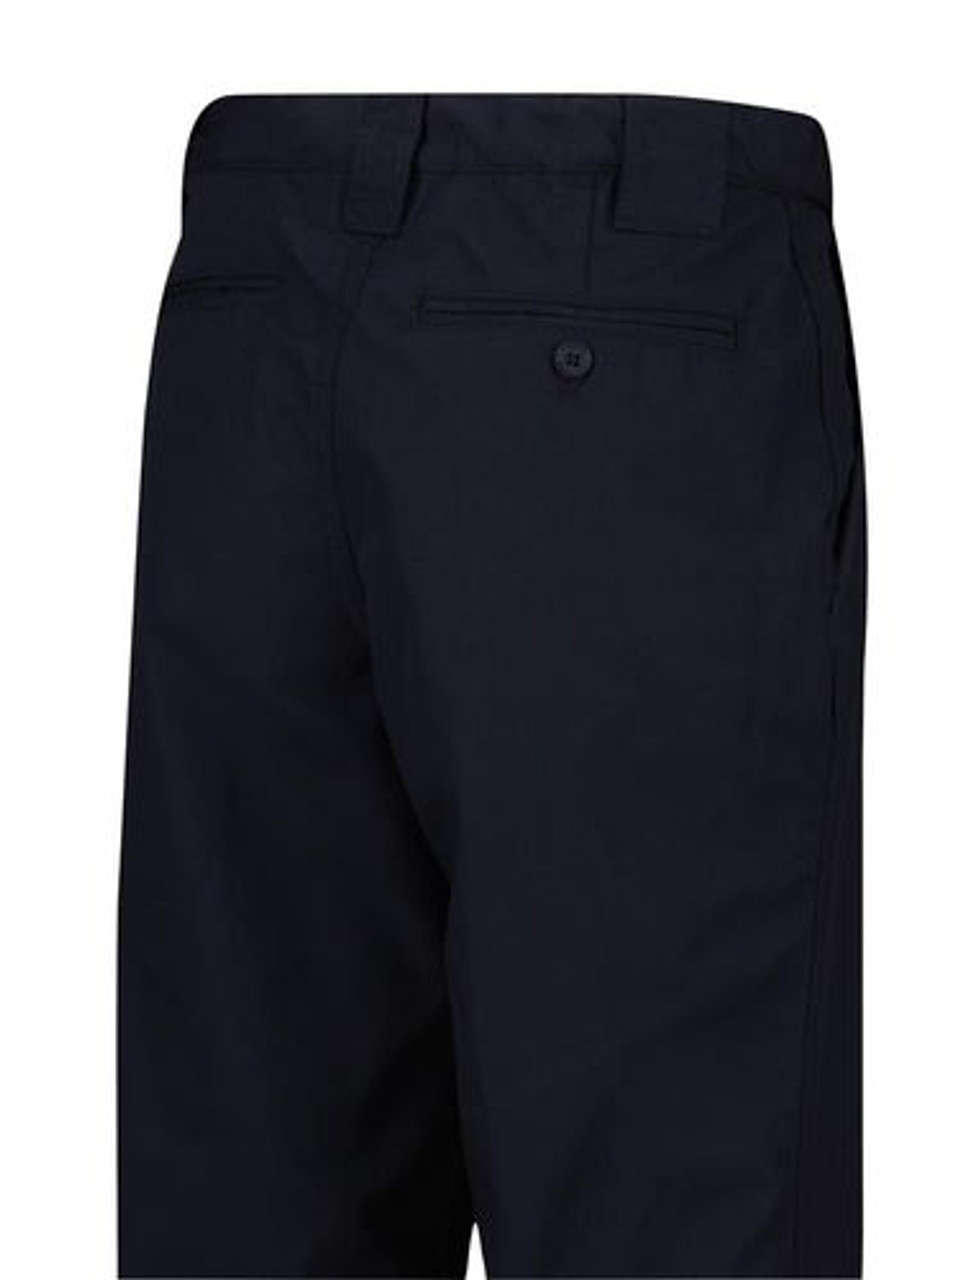 Propper F5293 Women's Lightweight Ripstop Tactical Station Uniform Pants, Classic/Straight Fit, Polyester/Cotton with Teflon fabric protector, Five-Pocket Design, LAPD Navy